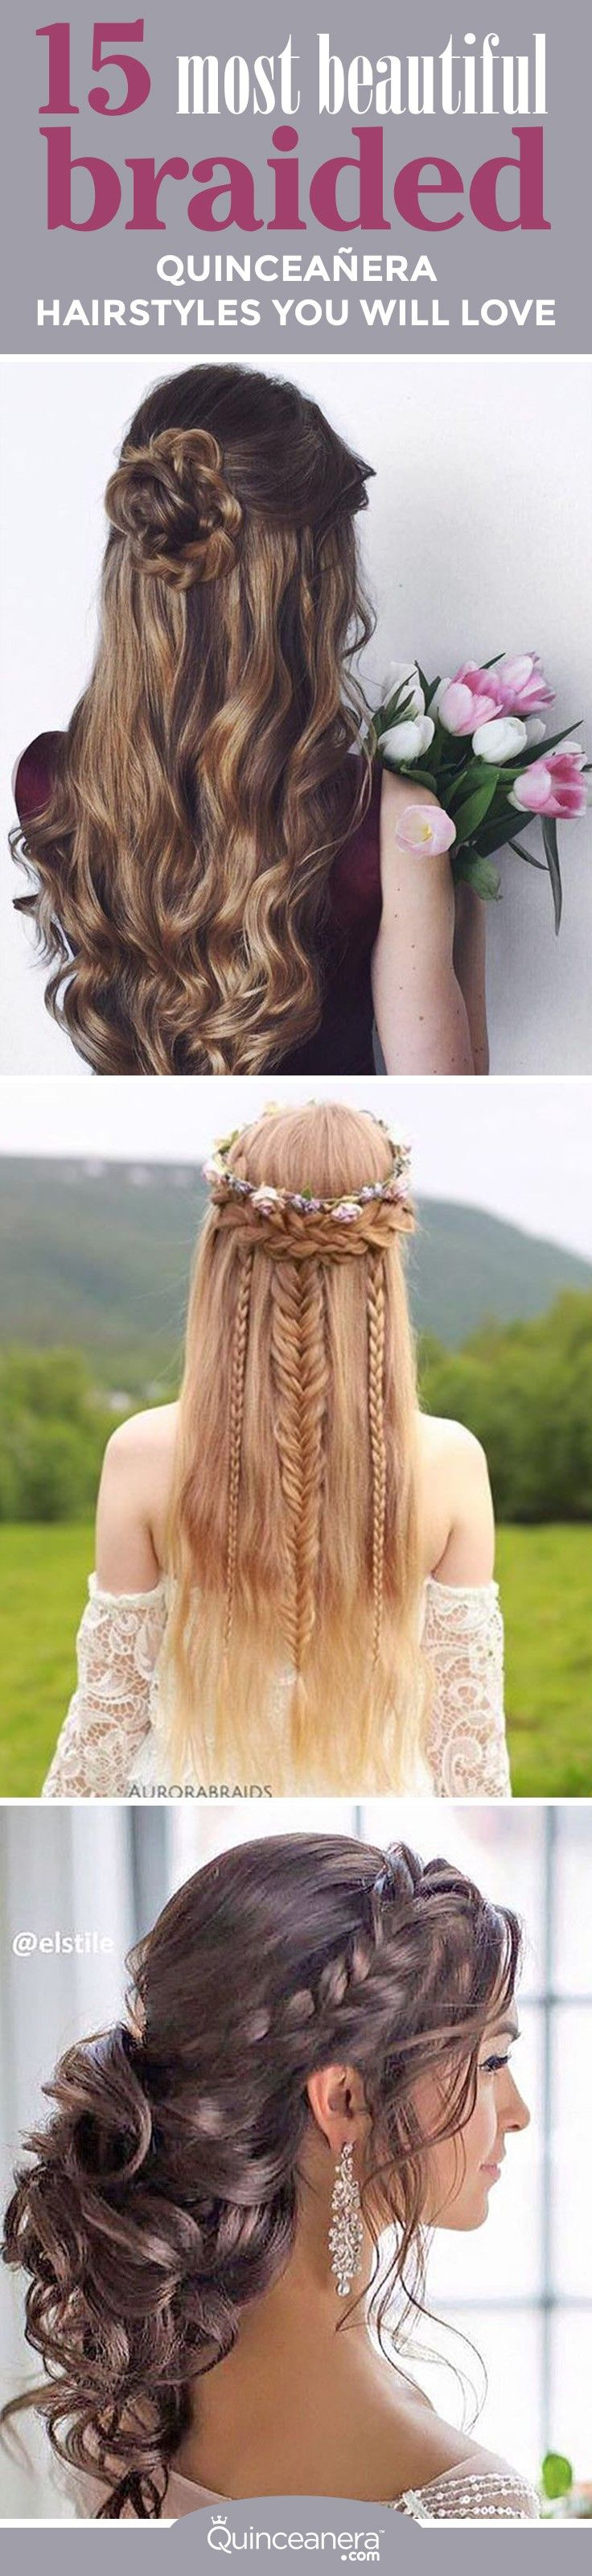 15 most beautiful braided quinceanera hairstyles you will love